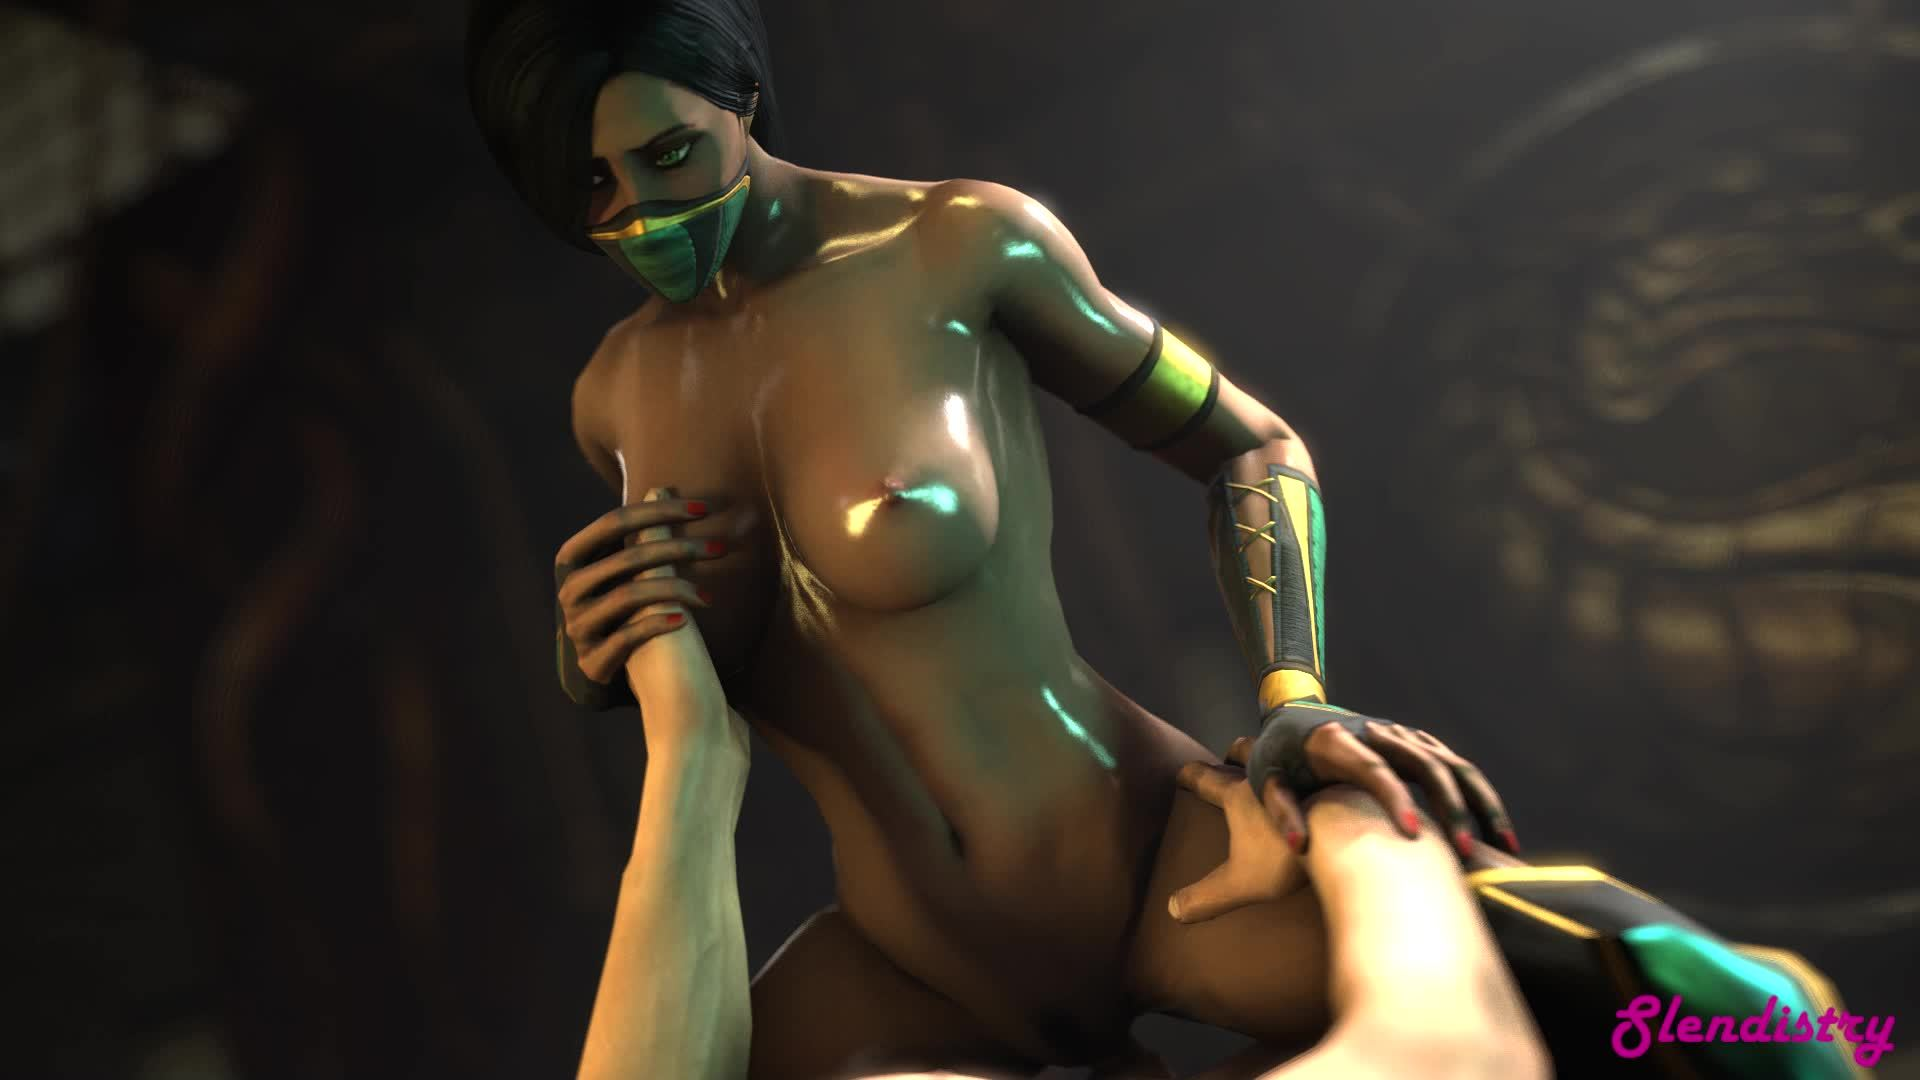 Mortal kombat 9 hentai porn galleries